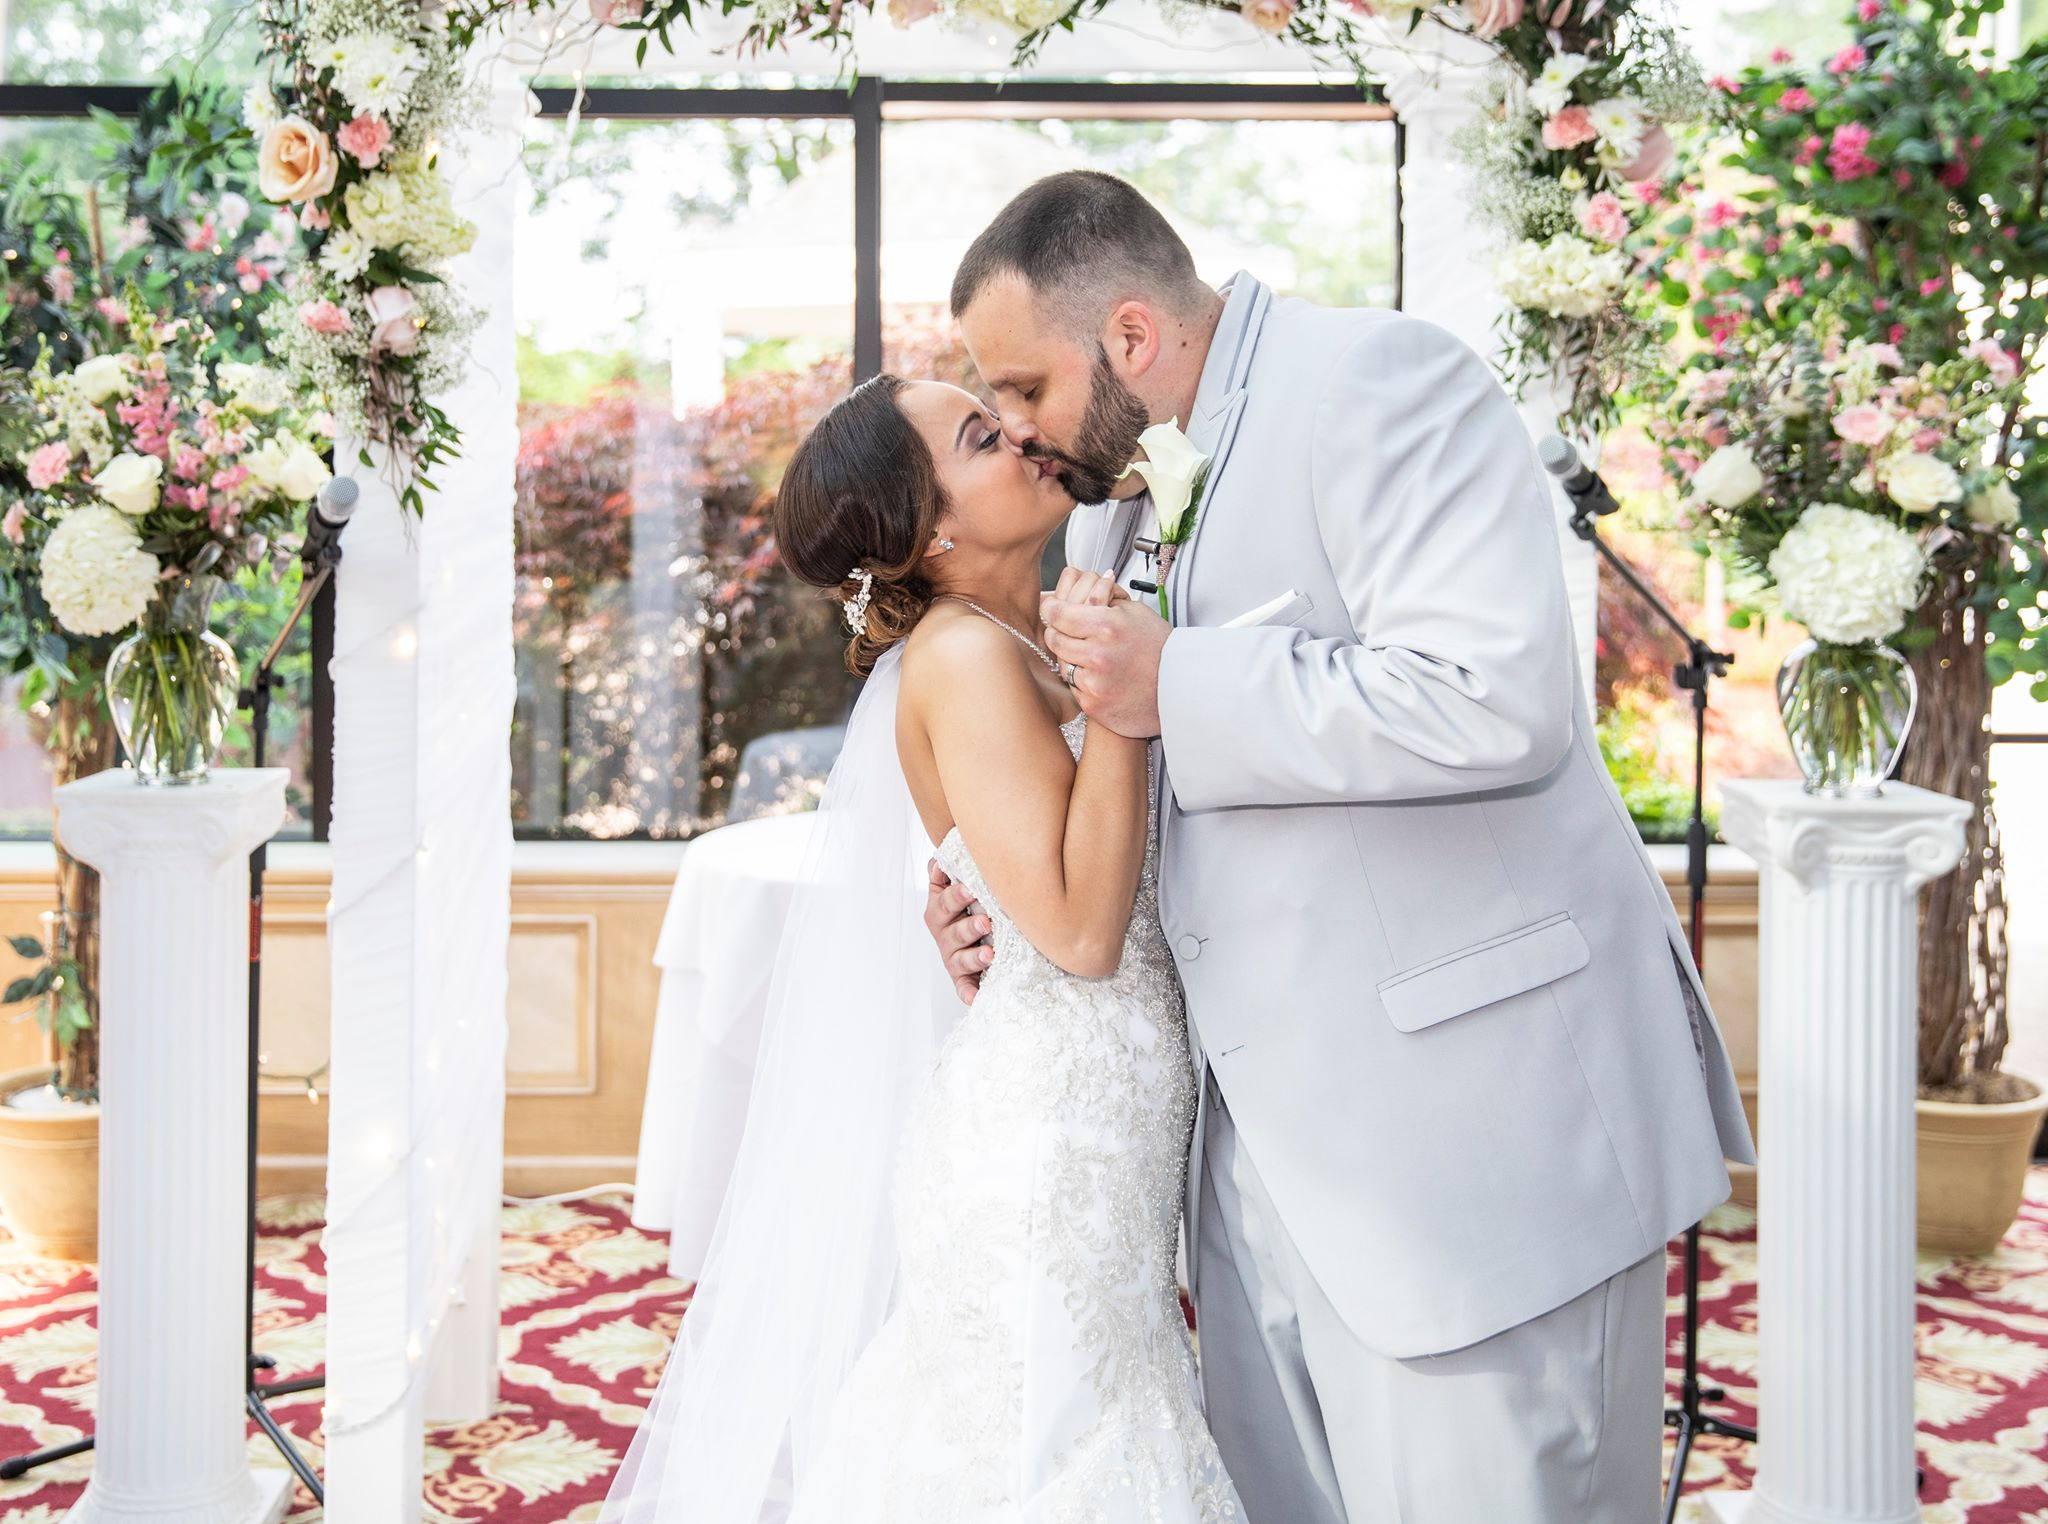 A ceremony of a beautiful wedding in New Jersey